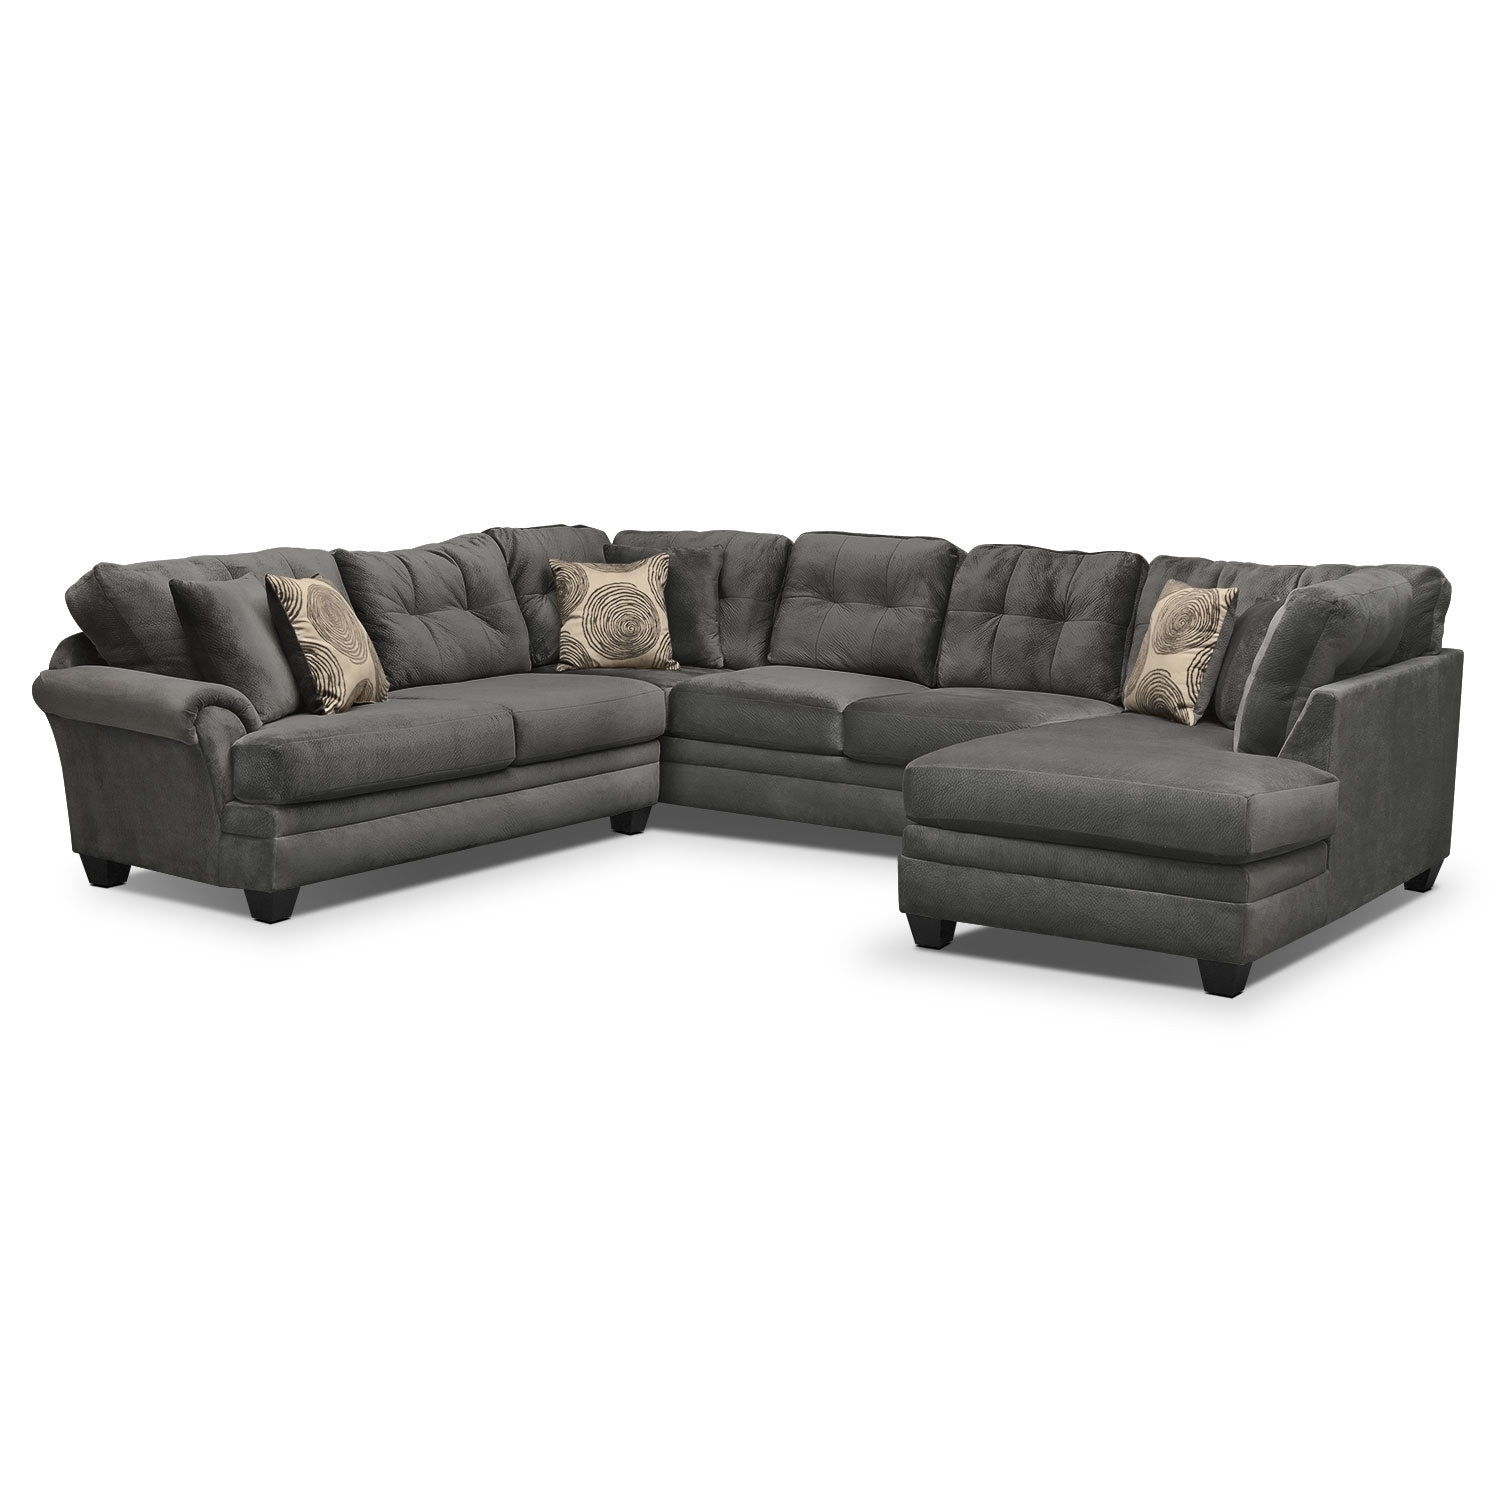 Couches Buffalo Ny | Reference Of Sofa And Couch Throughout Sectional Sofas At Buffalo Ny (View 4 of 15)